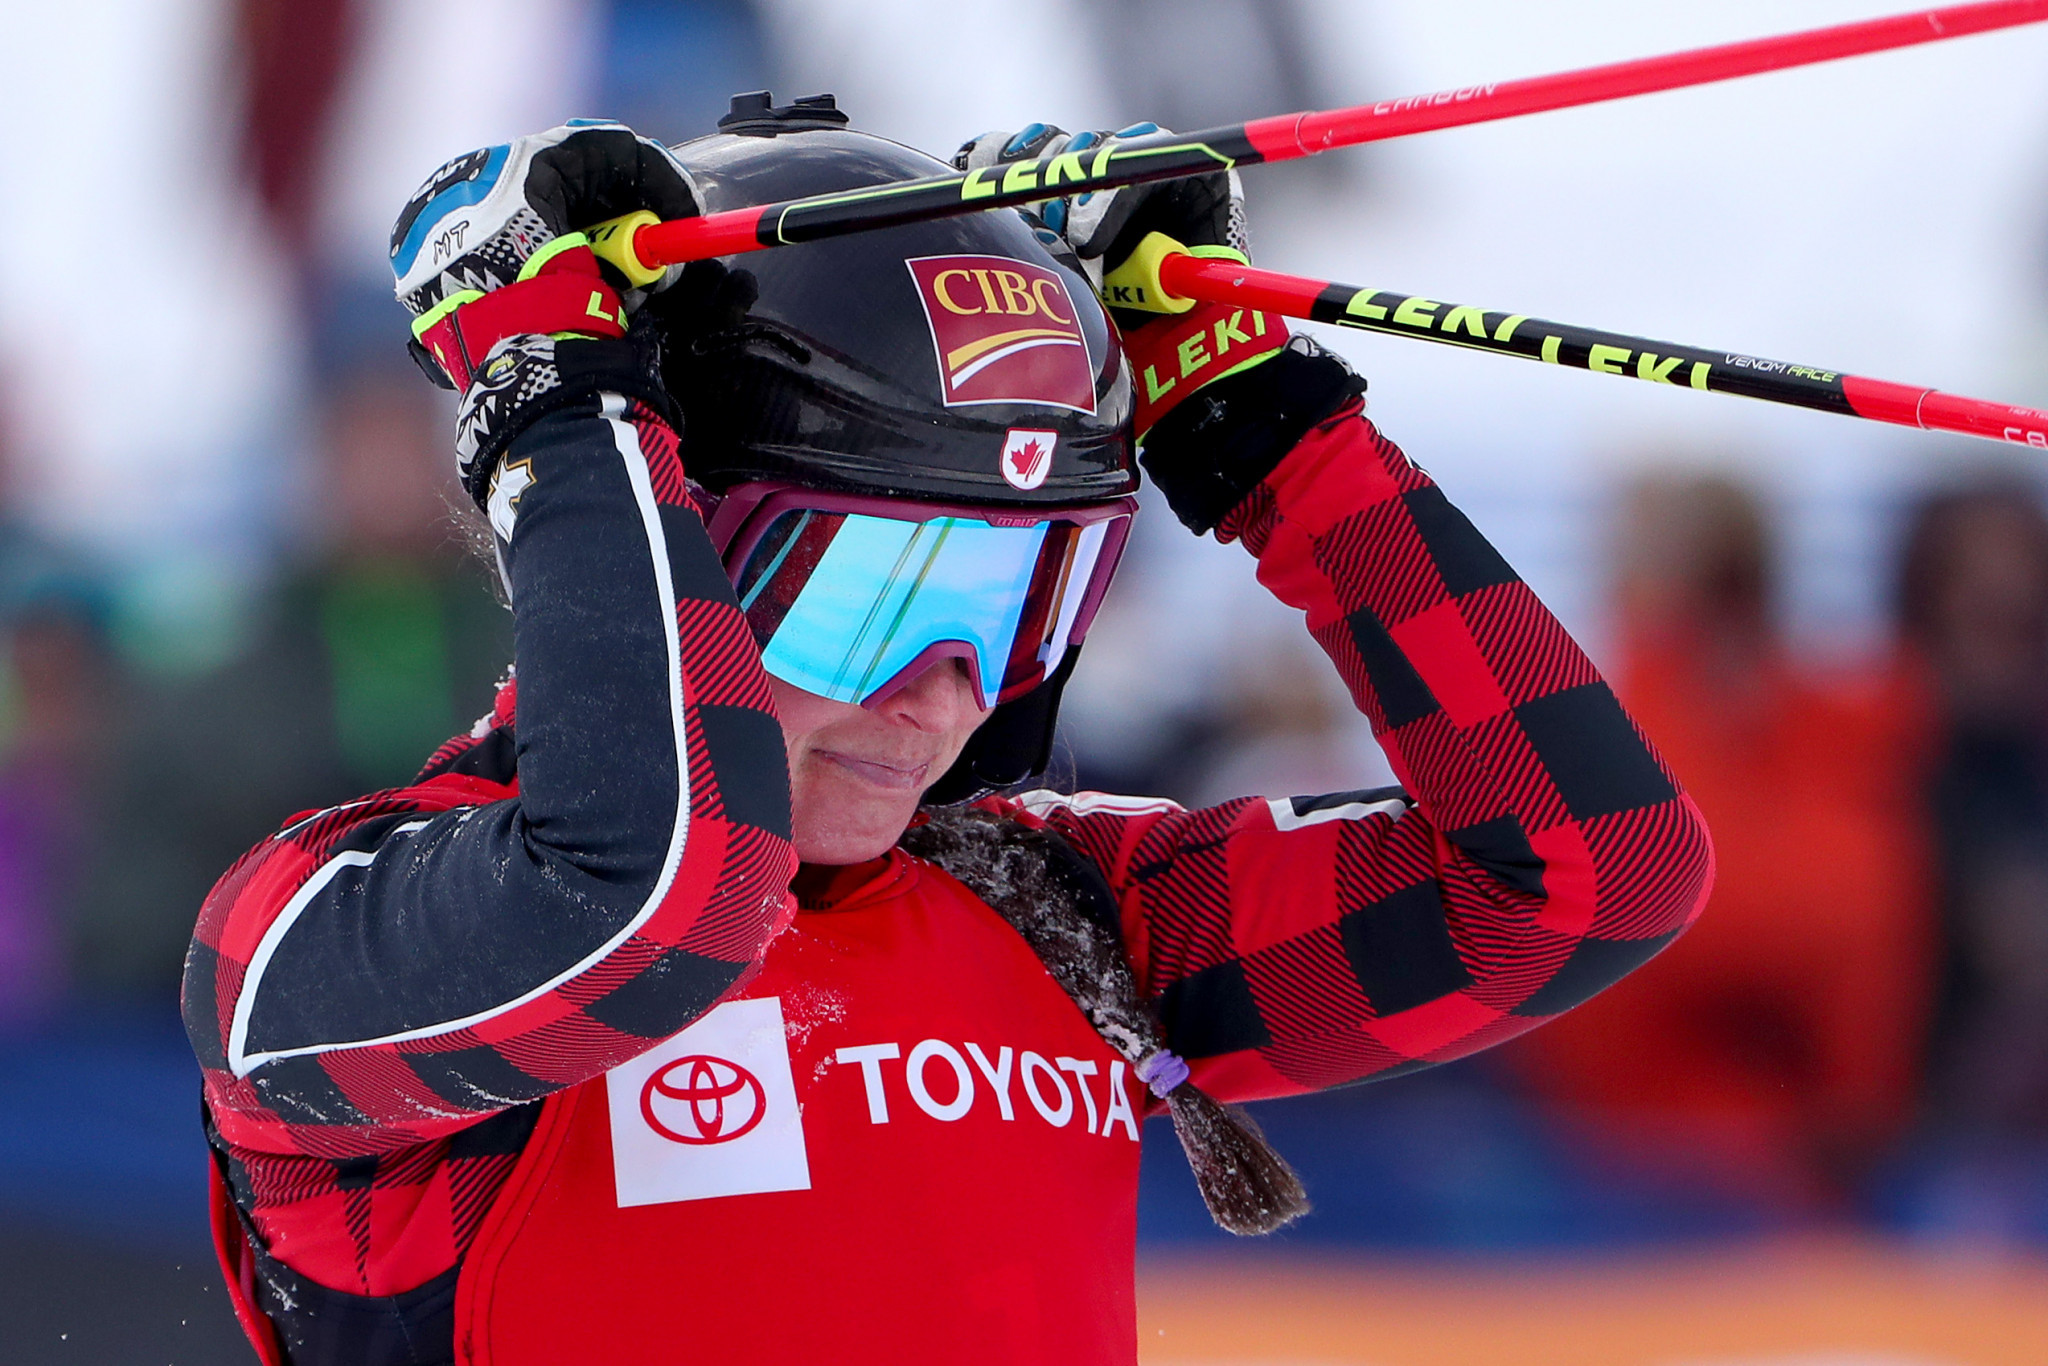 Newly crowned world champion Marielle Thompson of Canada could only finish second in the women's qualifying at the FIS Ski Cross World Cup in Feldberg ©Getty Images